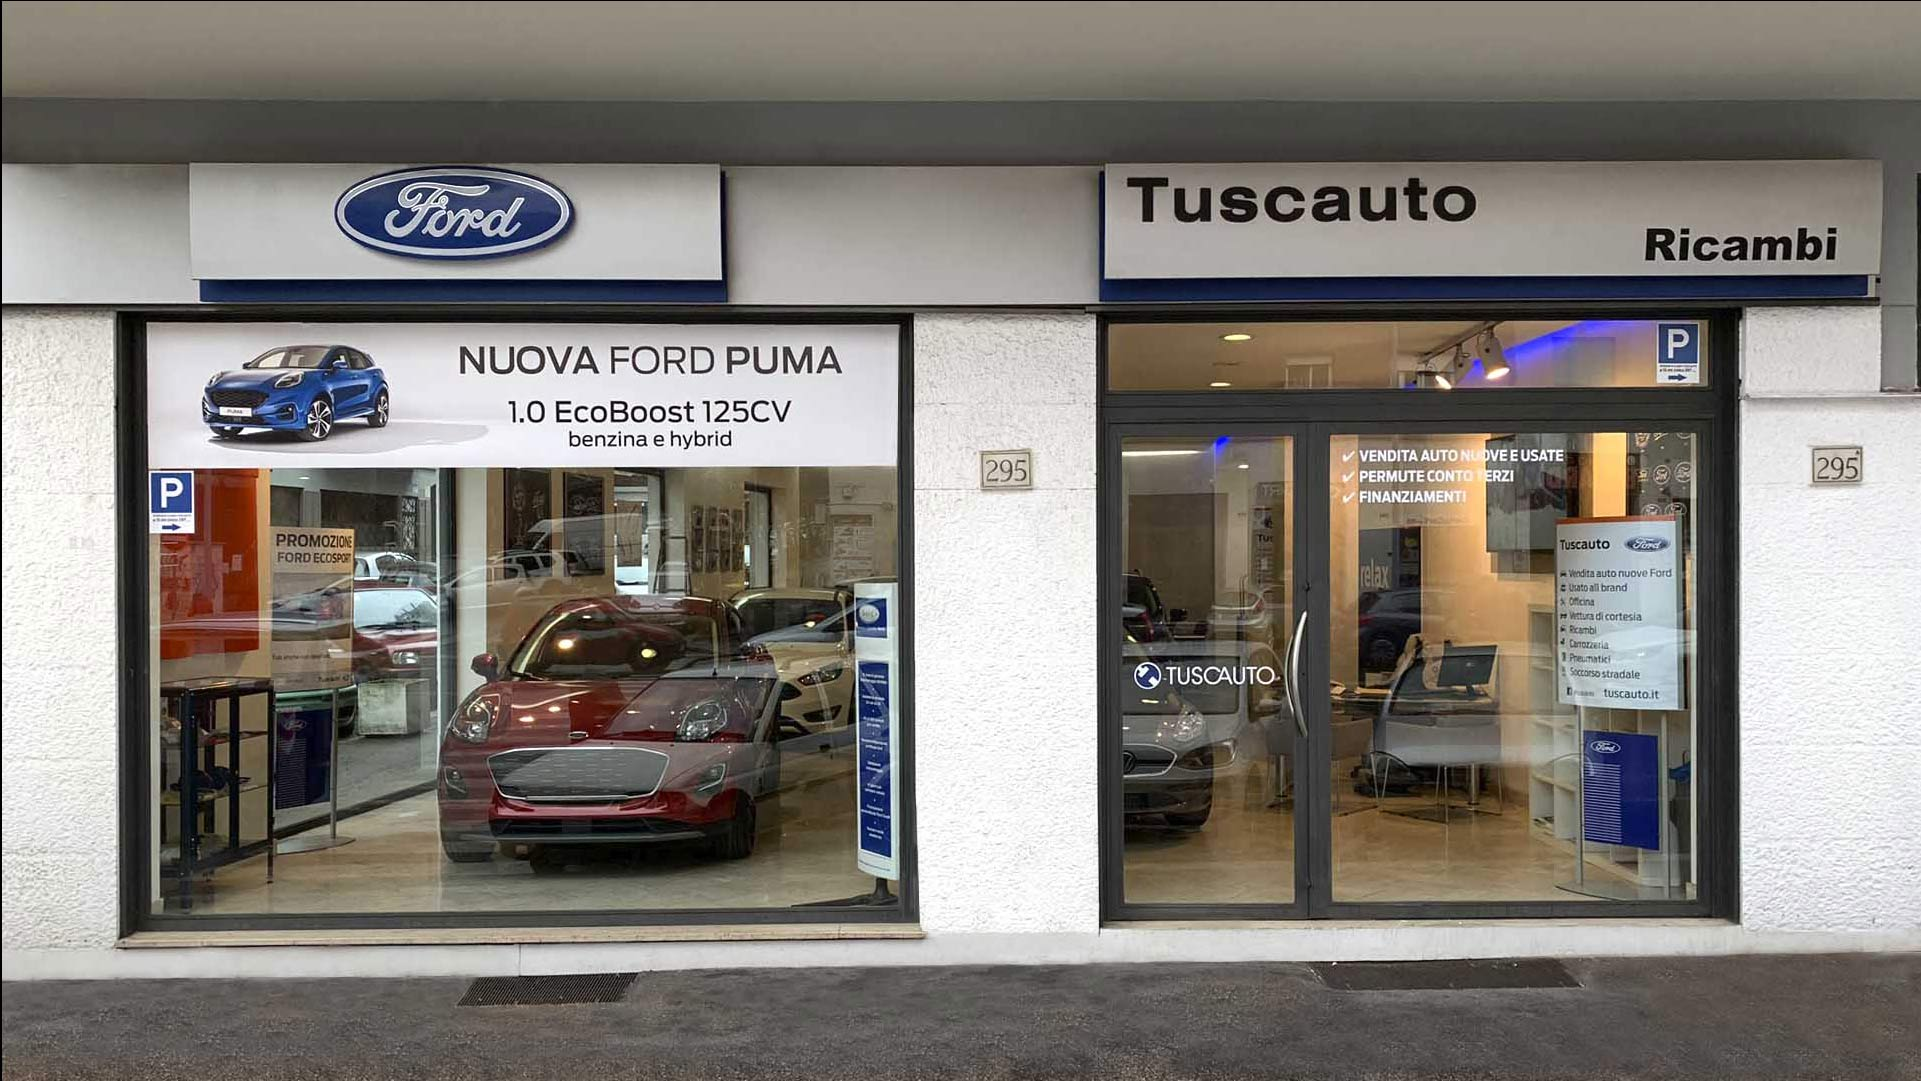 showroom_ford_tuscauto_romasud